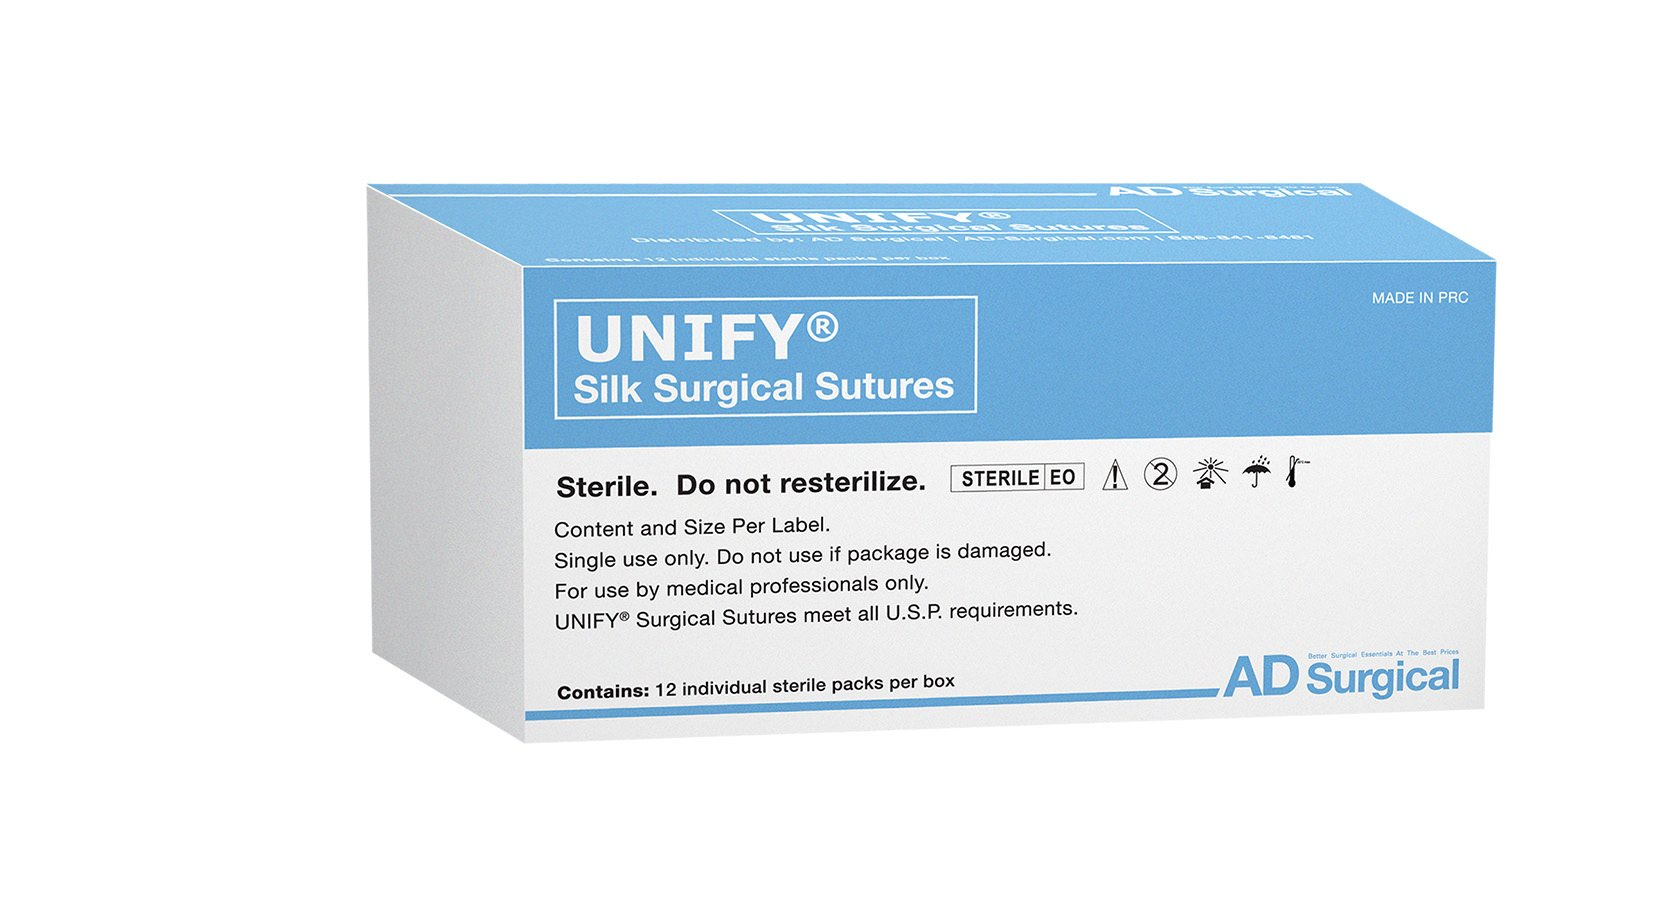 UNIFY Surgical Silk Sutures. #M-S318R19 Non-Absorbable. Braided Black. Size 3/0. 18'' 45cm Thread. 19mm 3/8 Circle R/C Needle (FS-2/C-6). 12 Foil Packs/Box.